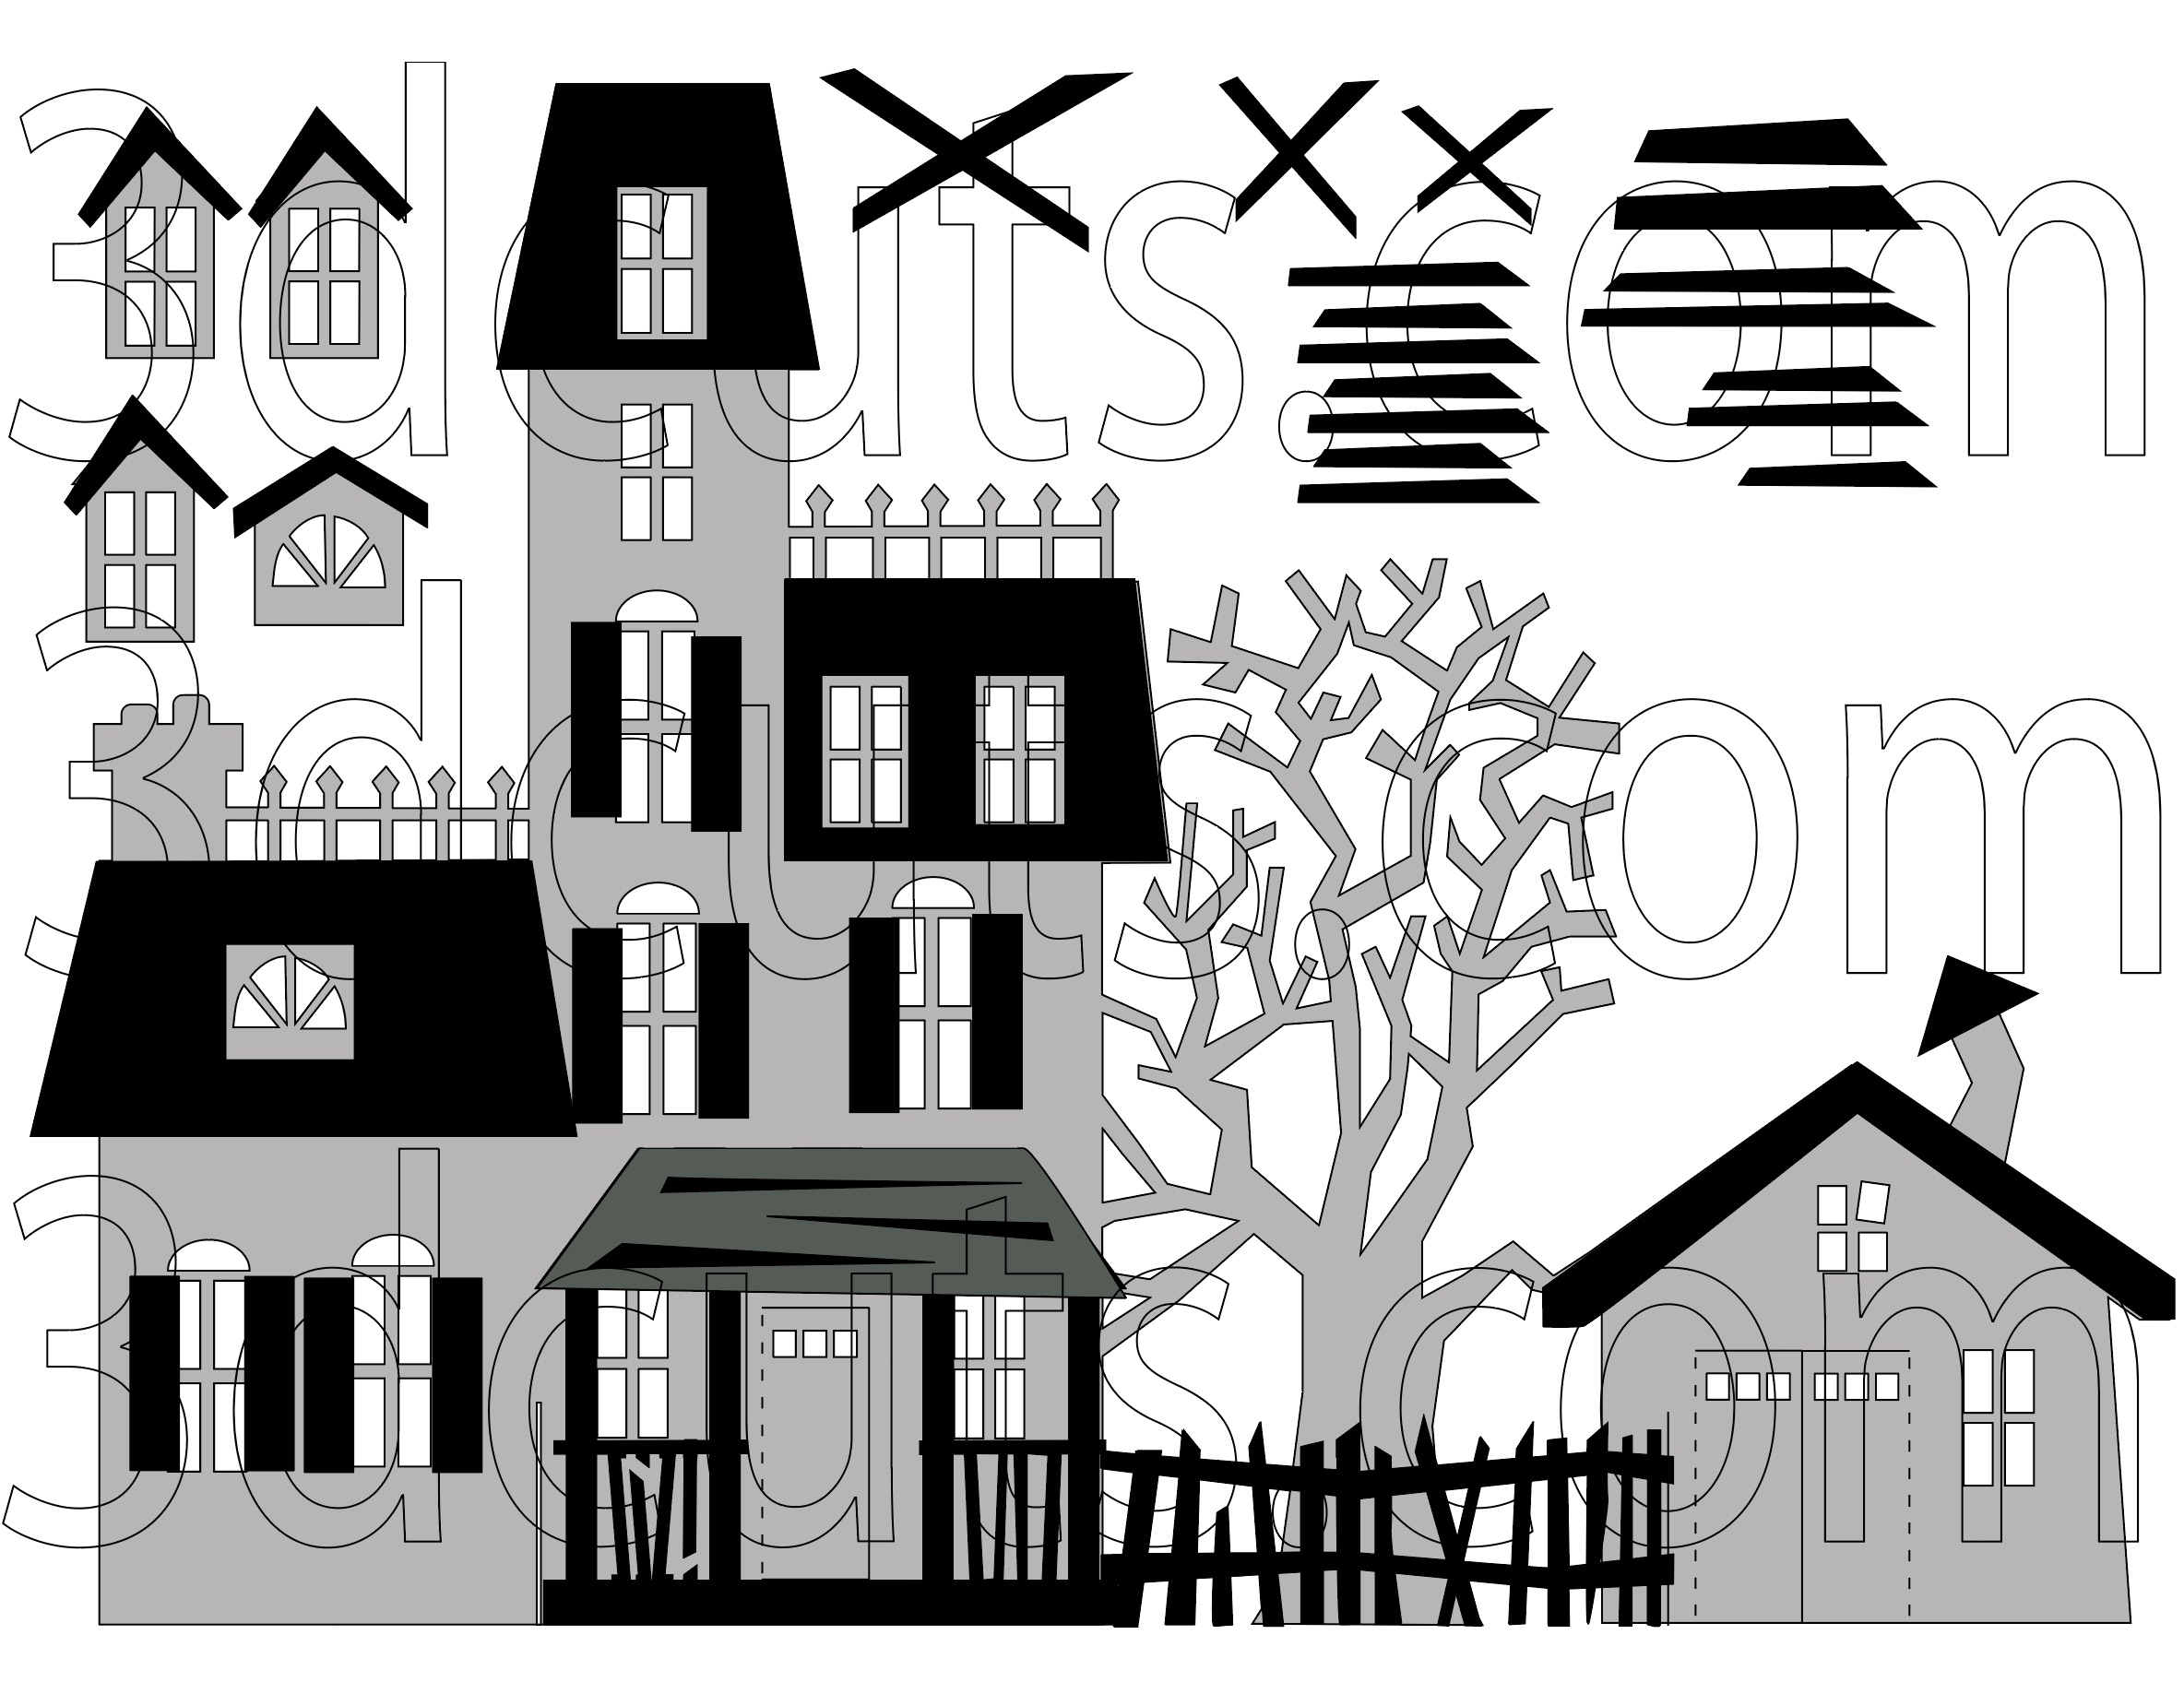 Follow this diagram for placement of the black details on Side 1. Lumber gets placed randomly over windows.